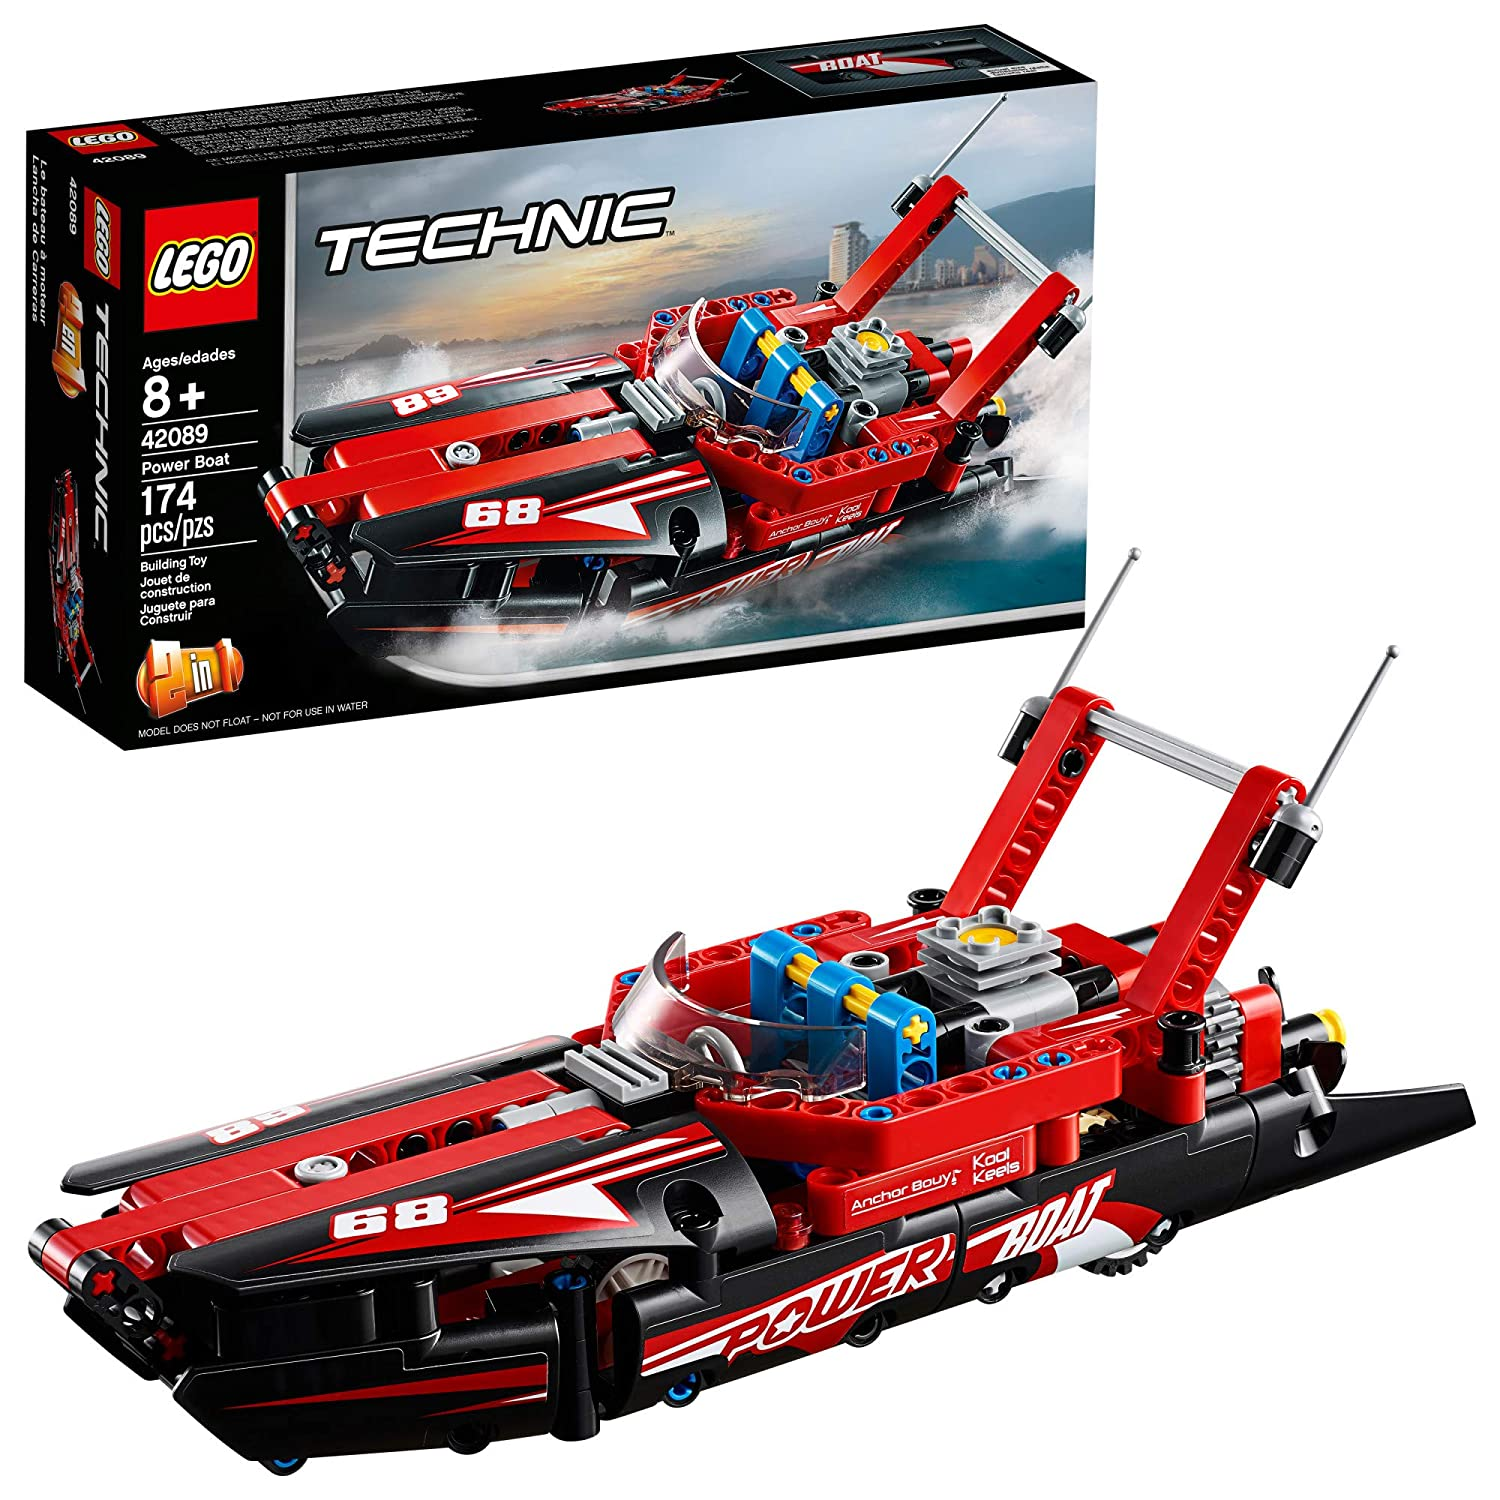 LEGO Technic Power Boat 42089 Building Kit , New 2019